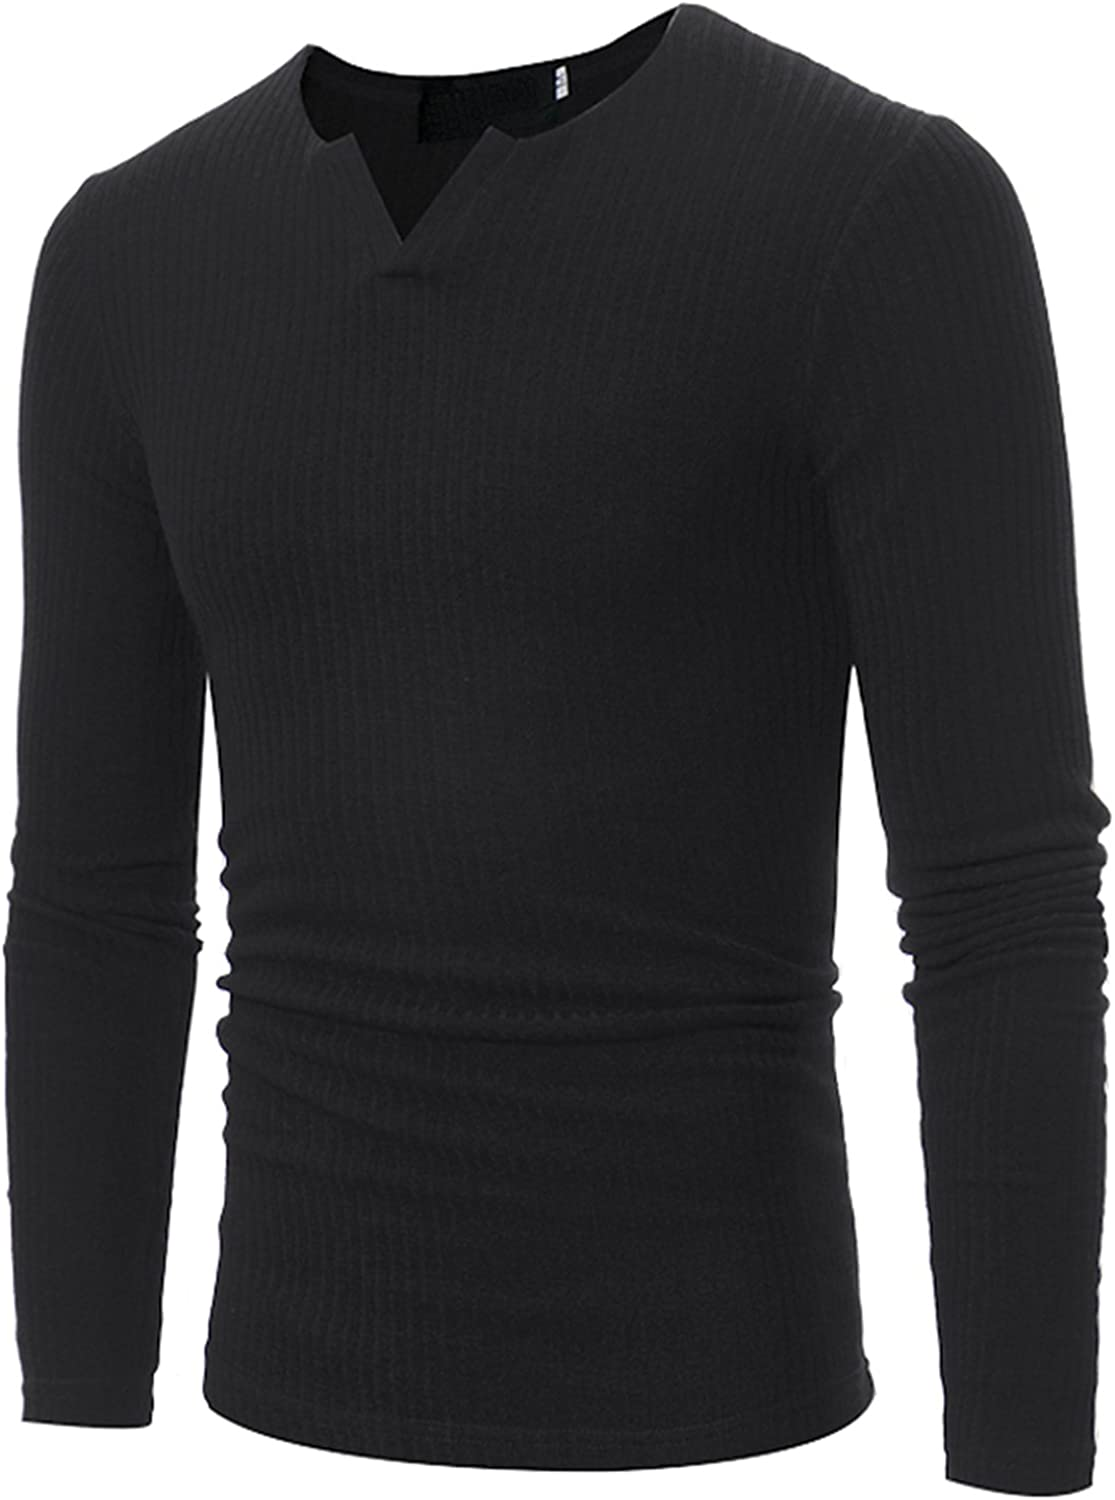 JOLIFEI Men's Premium Slim Fit Knitted Jumper V-Neck Long Sleeved Pullover Thermal Top Sweater Black US M=Tag L